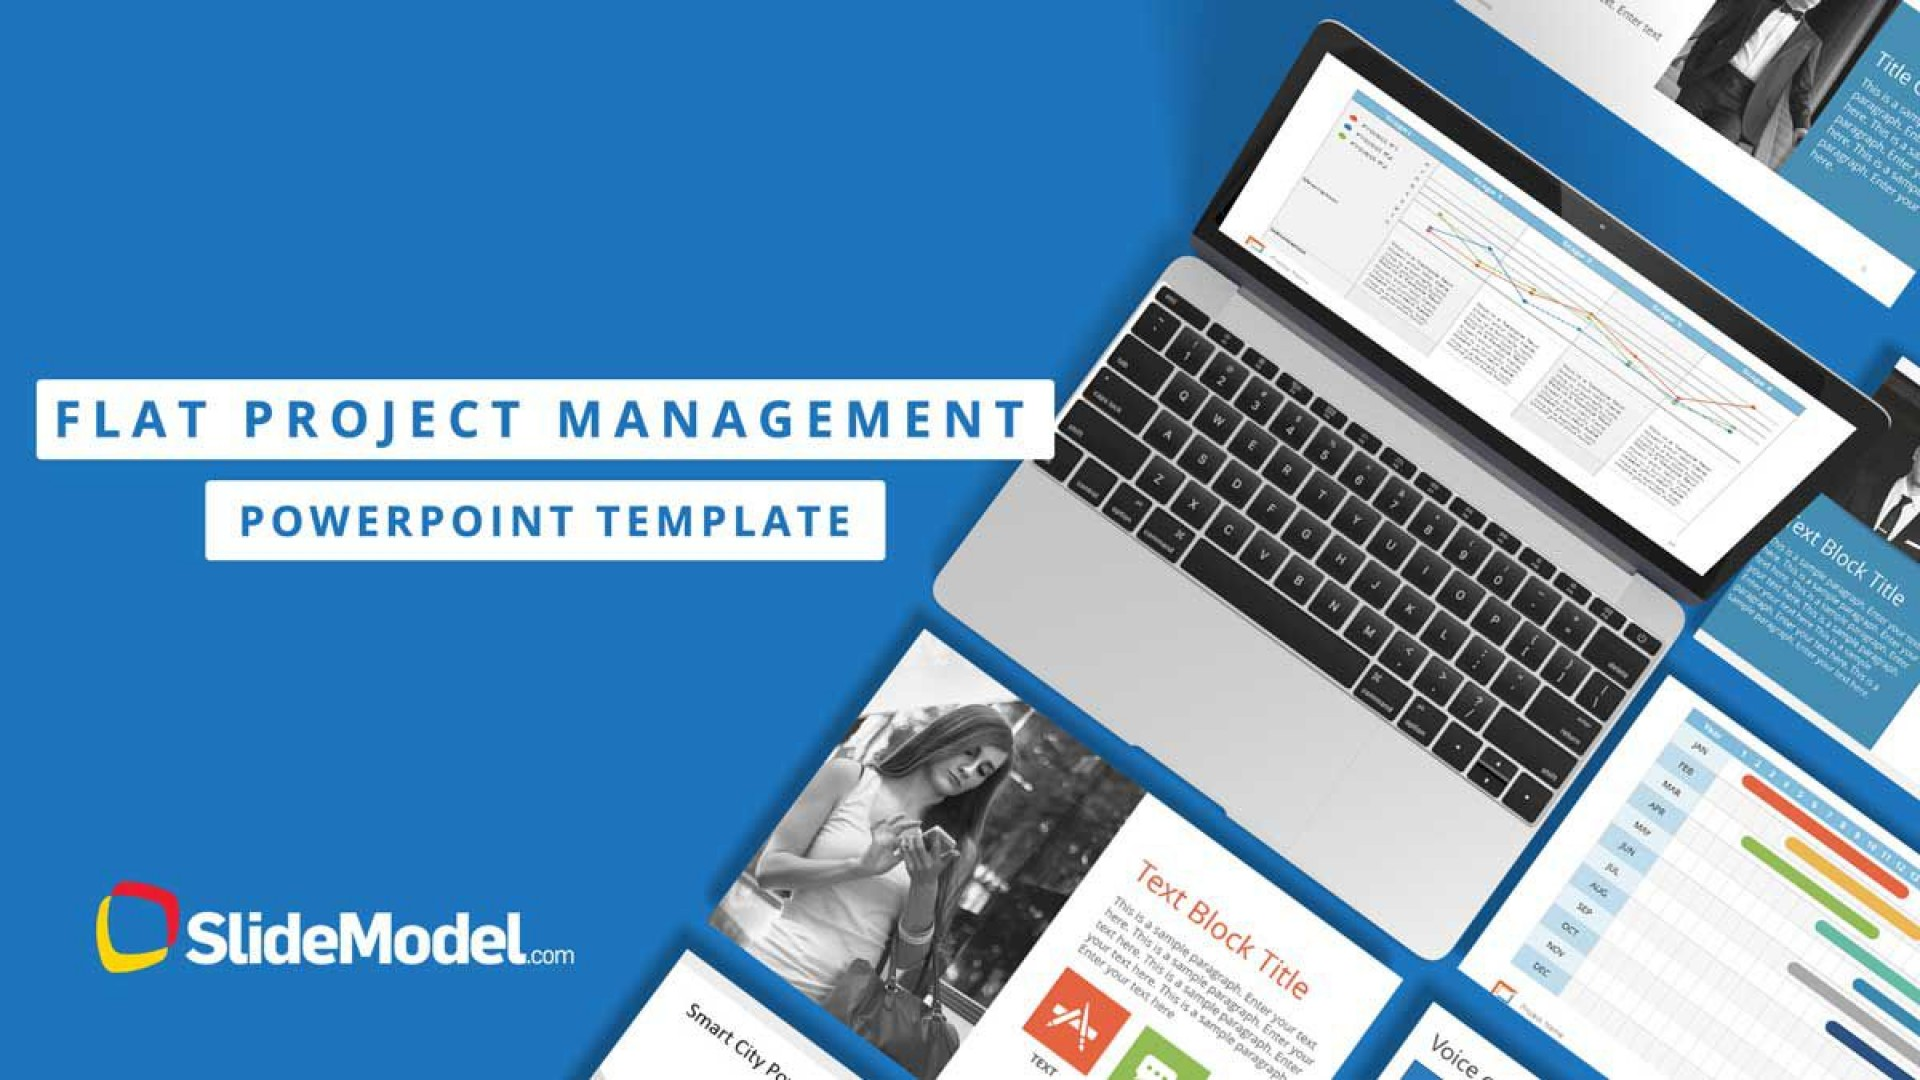 003 Unbelievable Project Management Ppt Template Free Download High Definition  Sqert Powerpoint Dashboard1920